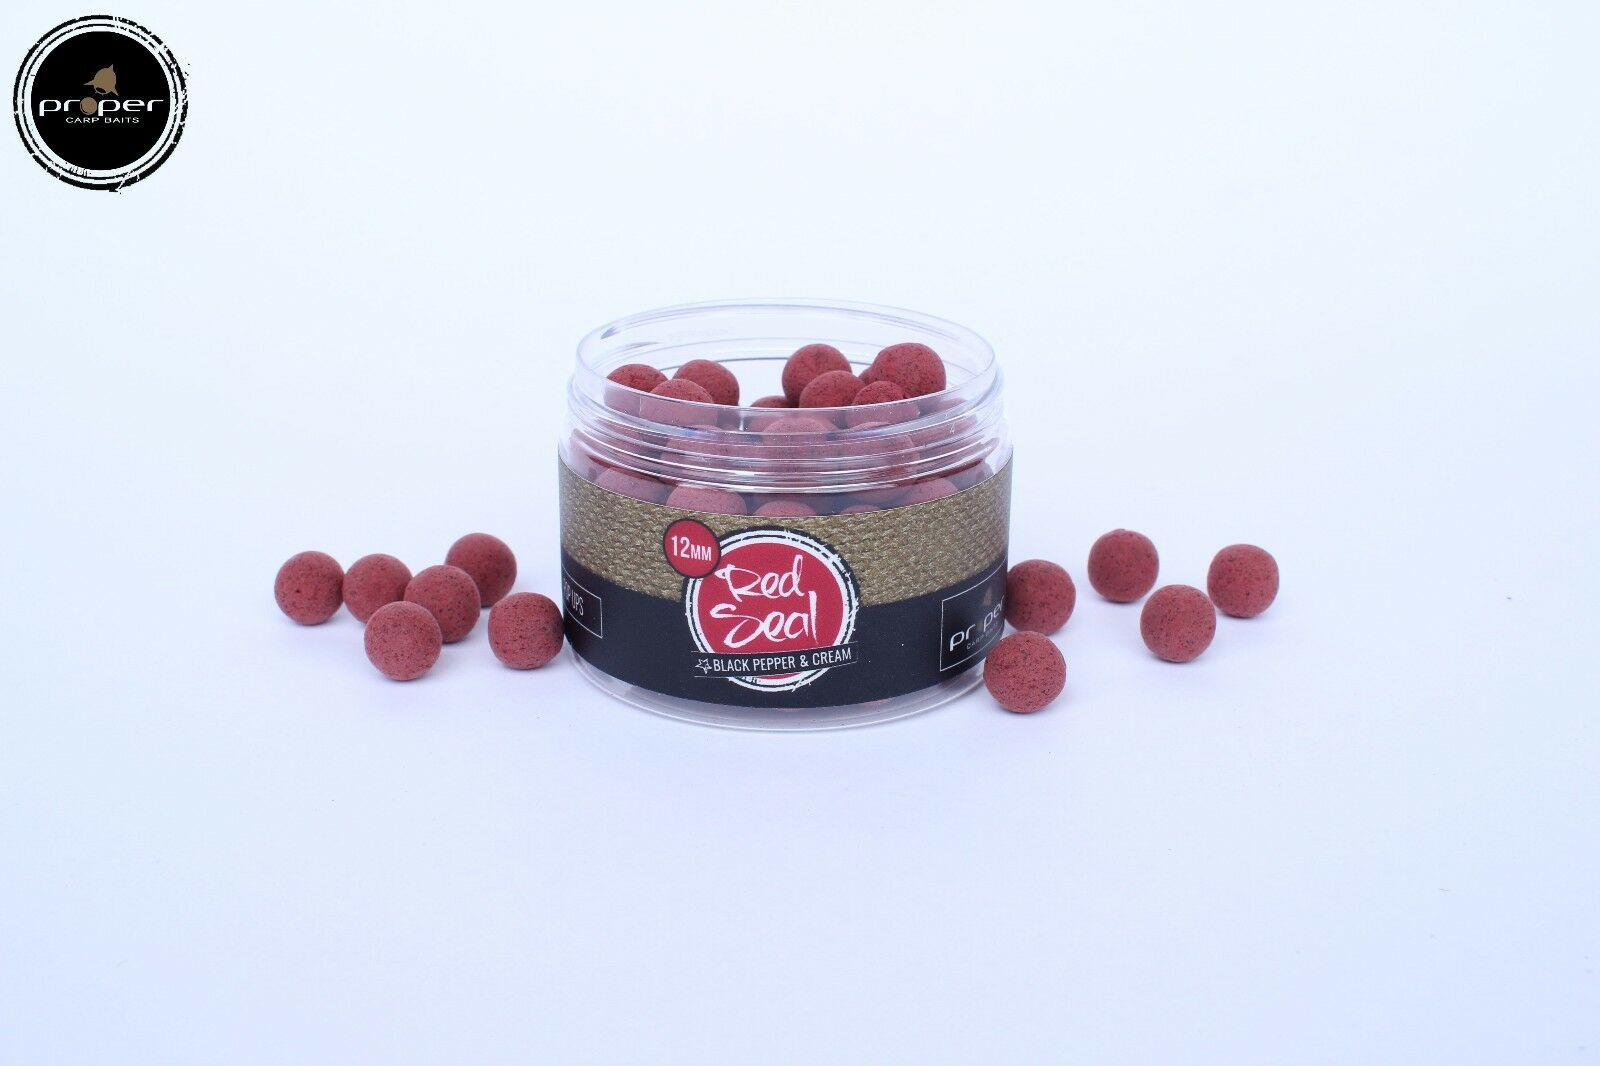 Nouveau propre carpe appâts Red Seal Full Range Range Full  Pop Ups, Wafters, pâte, trempettes 20a350